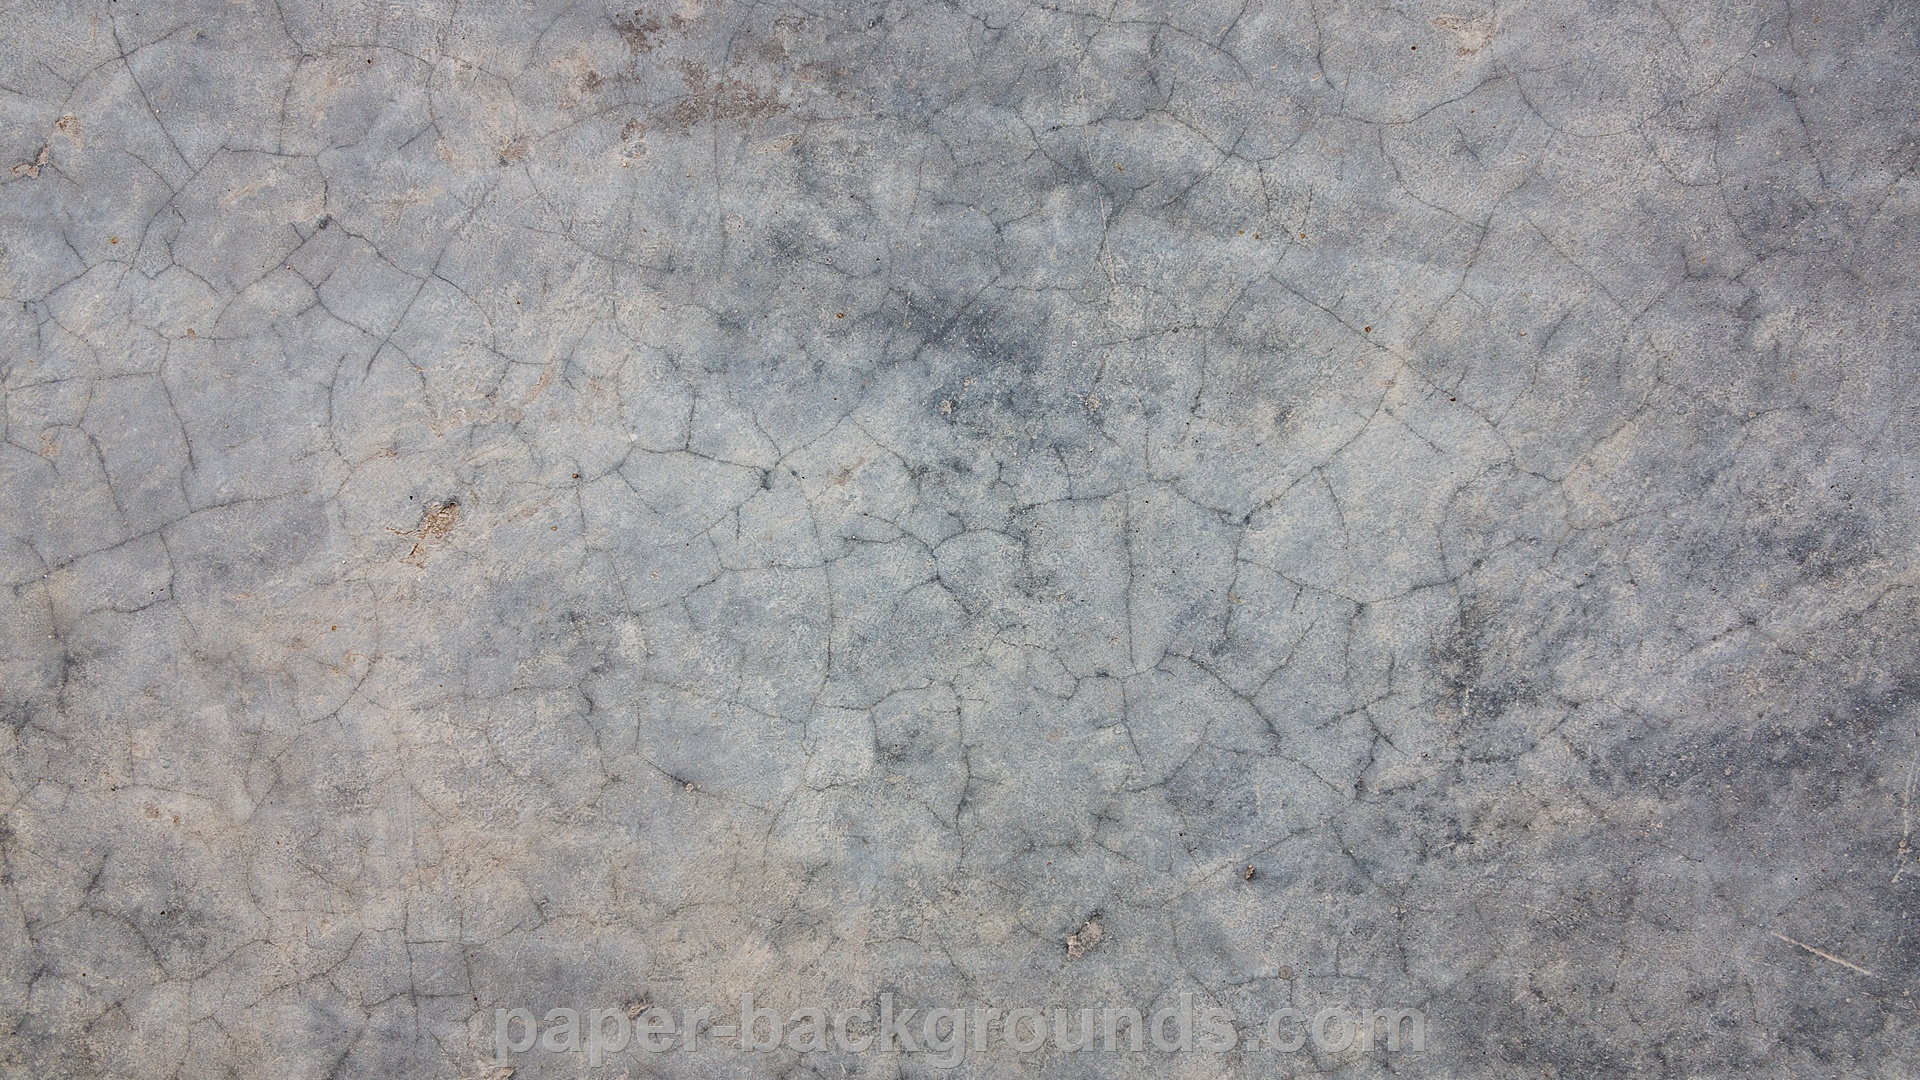 Cracked Concrete Floor Texture HD. Paper Backgrounds   Floor Textures   Royalty Free HD Paper Backgrounds